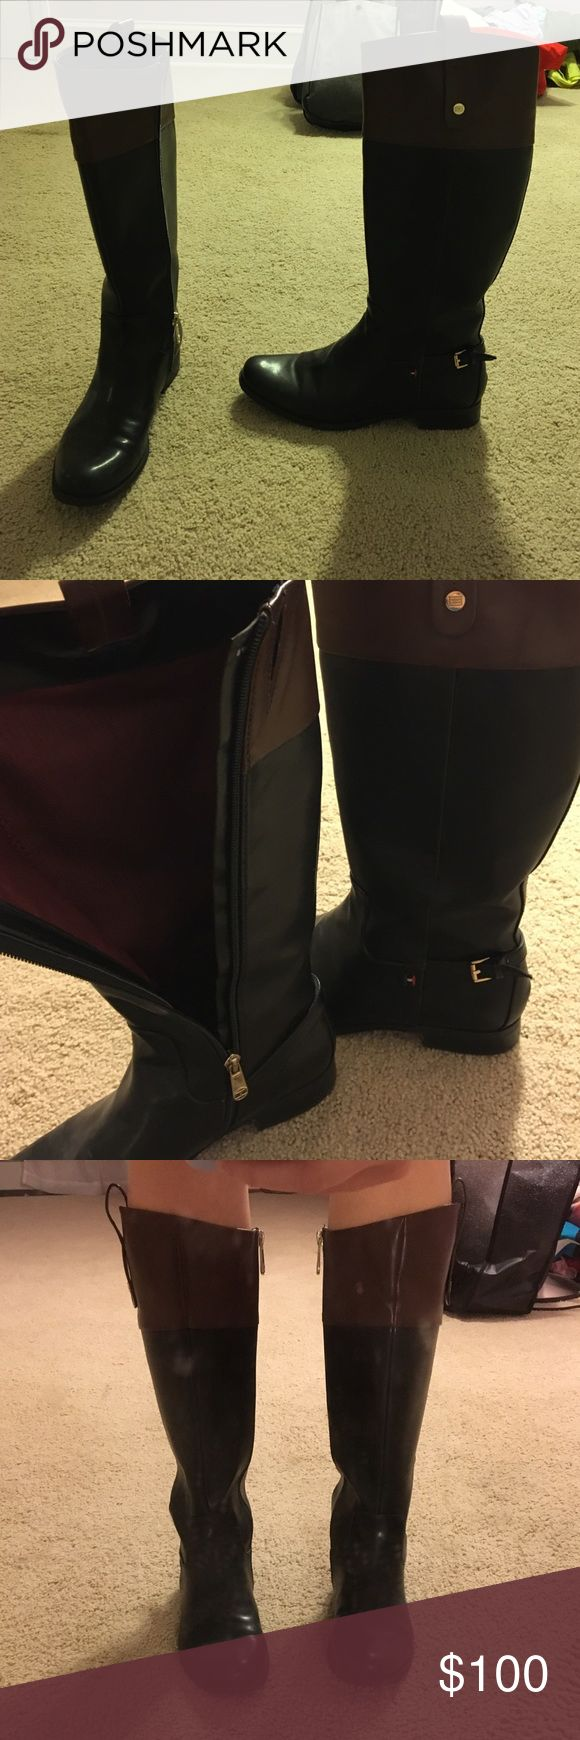 Tommy Hilfiger Riding Boots Tommy Hilfiger riding boots. Color block design- black and brown on top. Really Good condition. Size 8.5. No highly visible scuff marks. Tommy Hilfiger Shoes Winter & Rain Boots